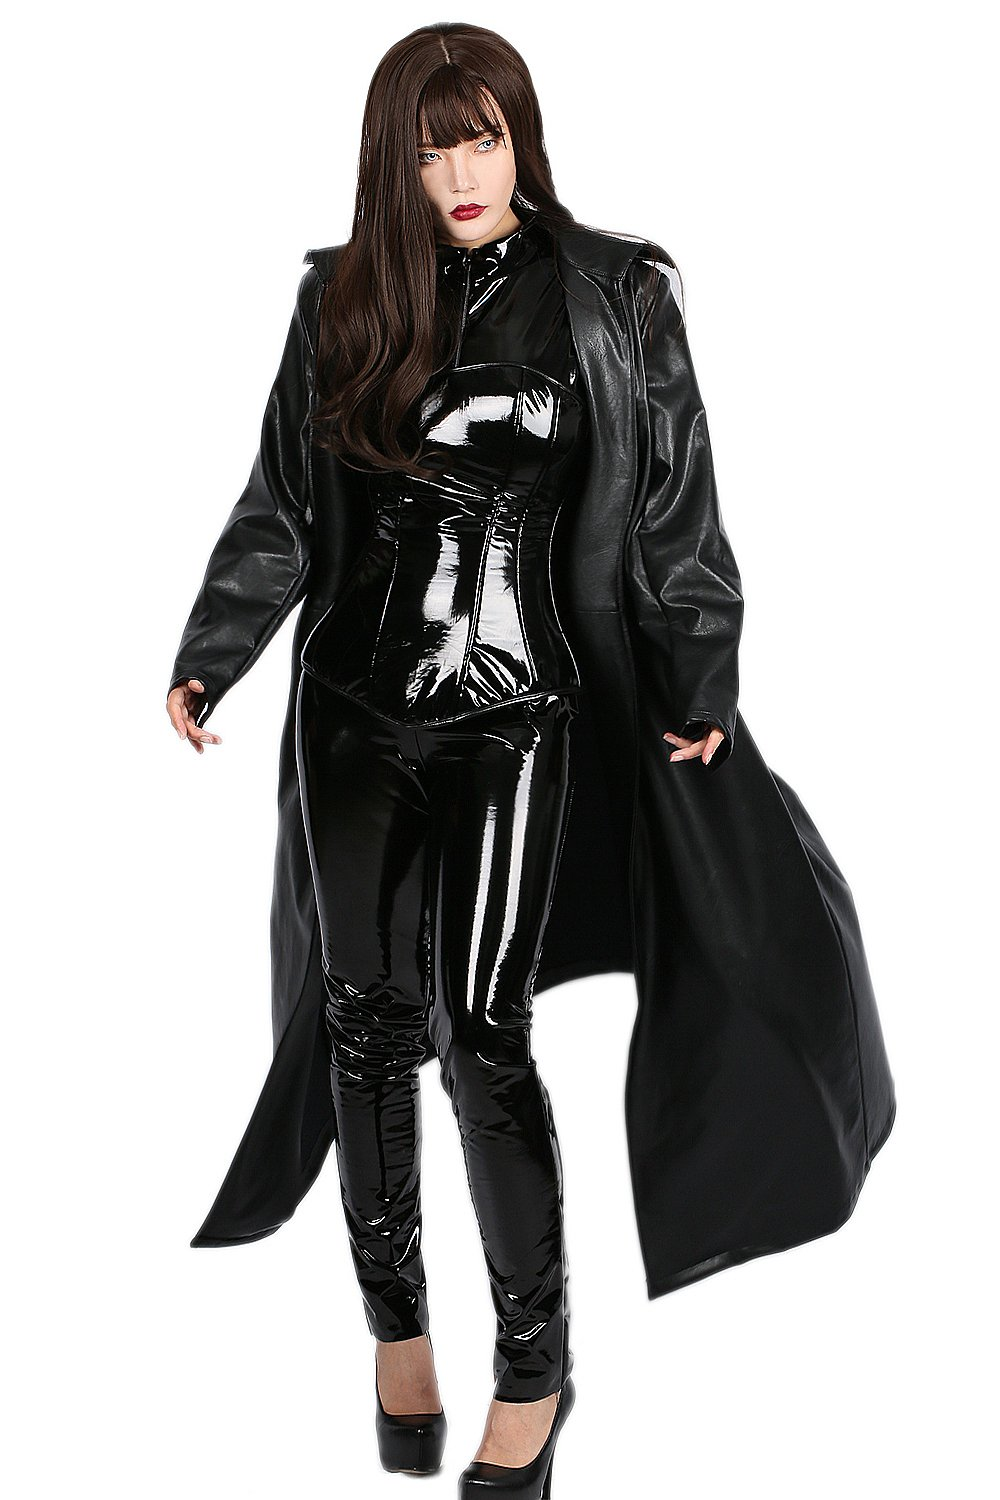 Selene Cosplay Costume Trench Coat with Catsuit Outfit Suit for Halloween L